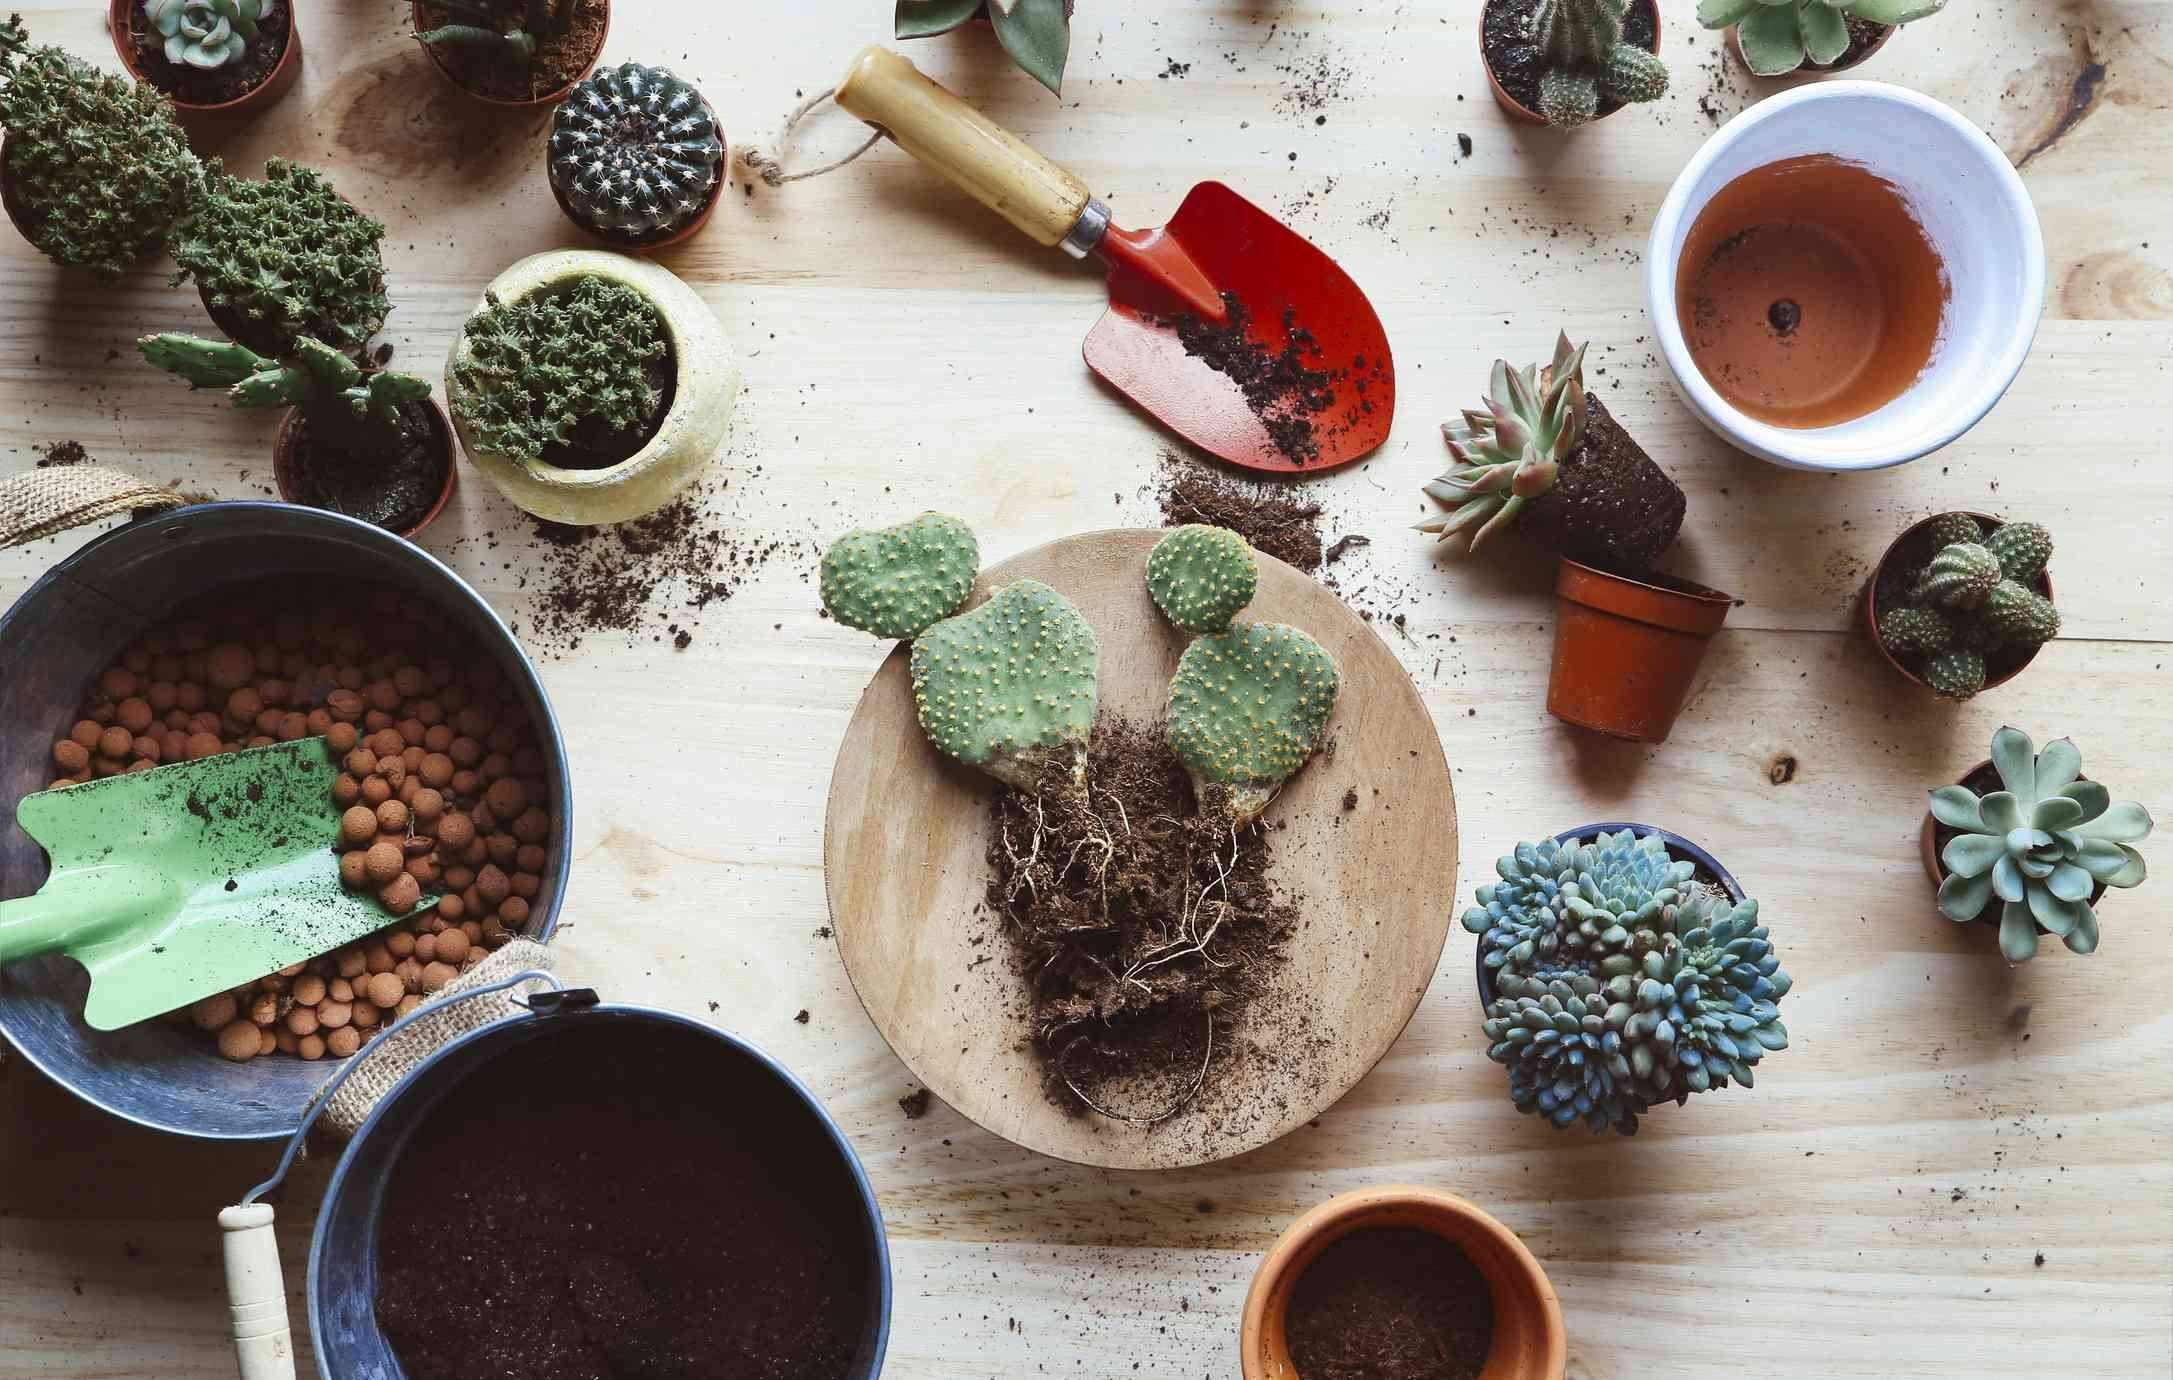 Repotting a bunny ear cactus (Opuntia microdasys) on a wooden background.